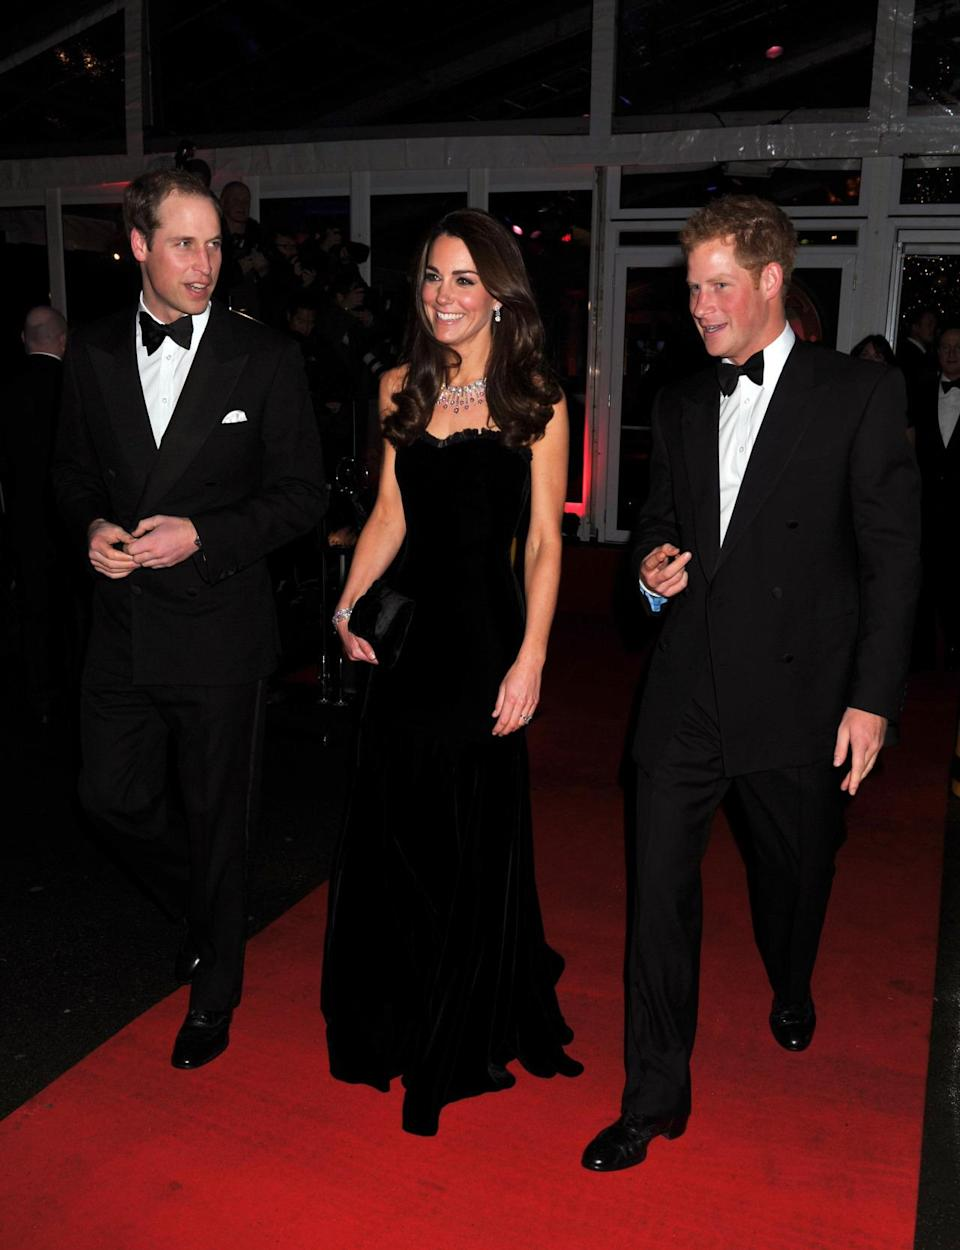 <p>At a military awards ceremony, Kate stunned in a simple black velvet gown designed by Alexander McQueen and satin Prada pumps. She teamed the ensemble with a matching velvet clutch.</p><p><i>[Photo: PA]</i></p>